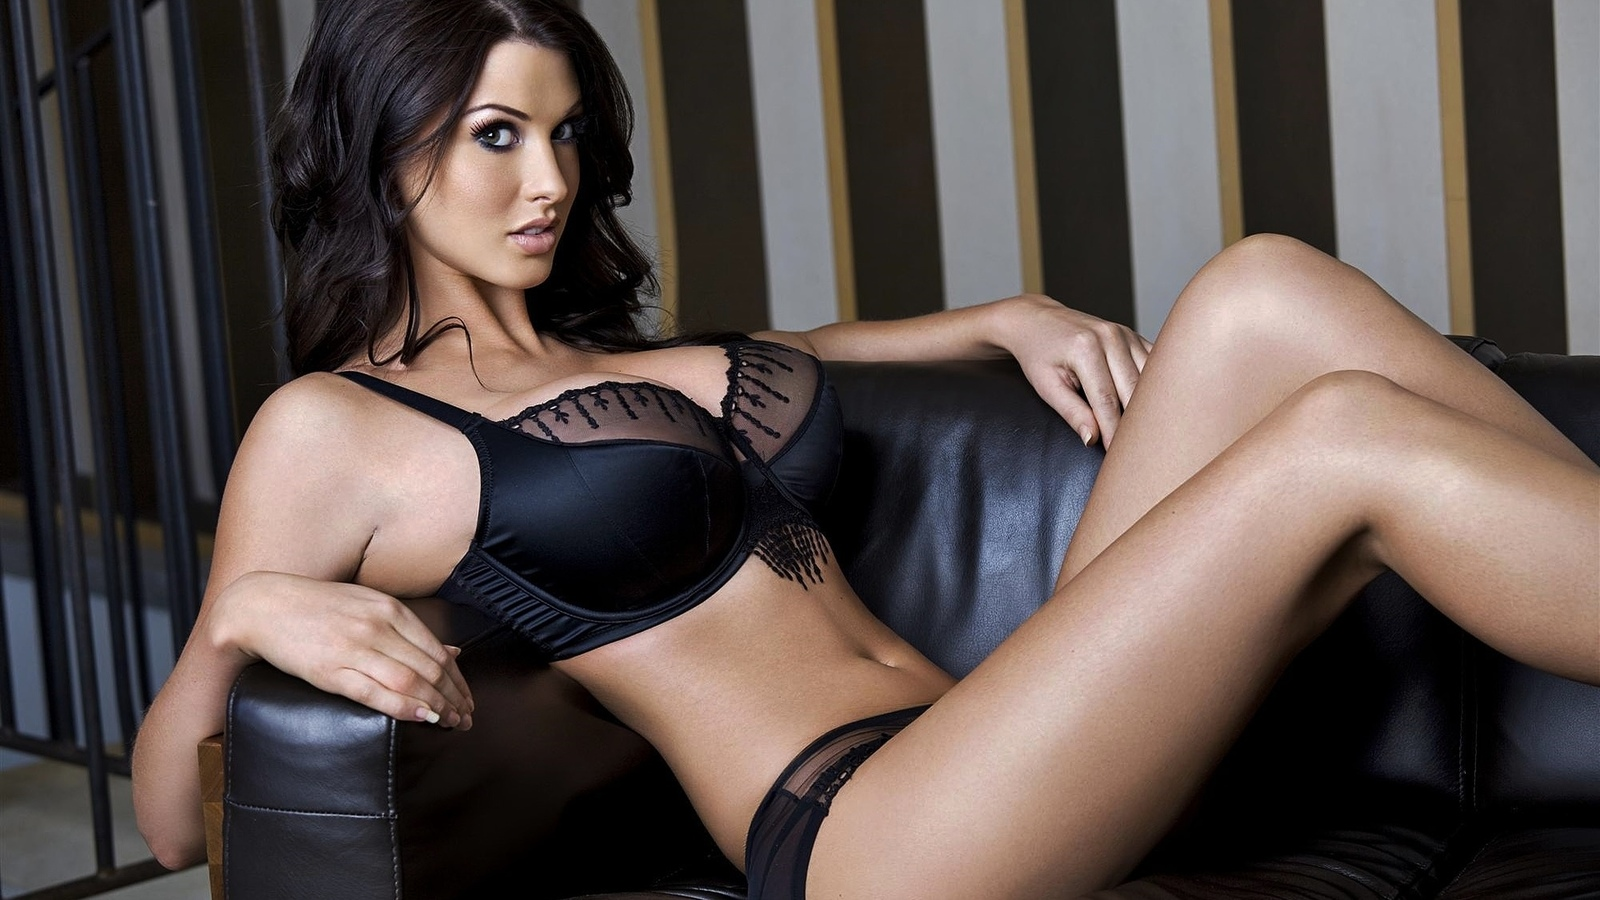 Alice goodwin sex porn hd image downloads sexual gallery